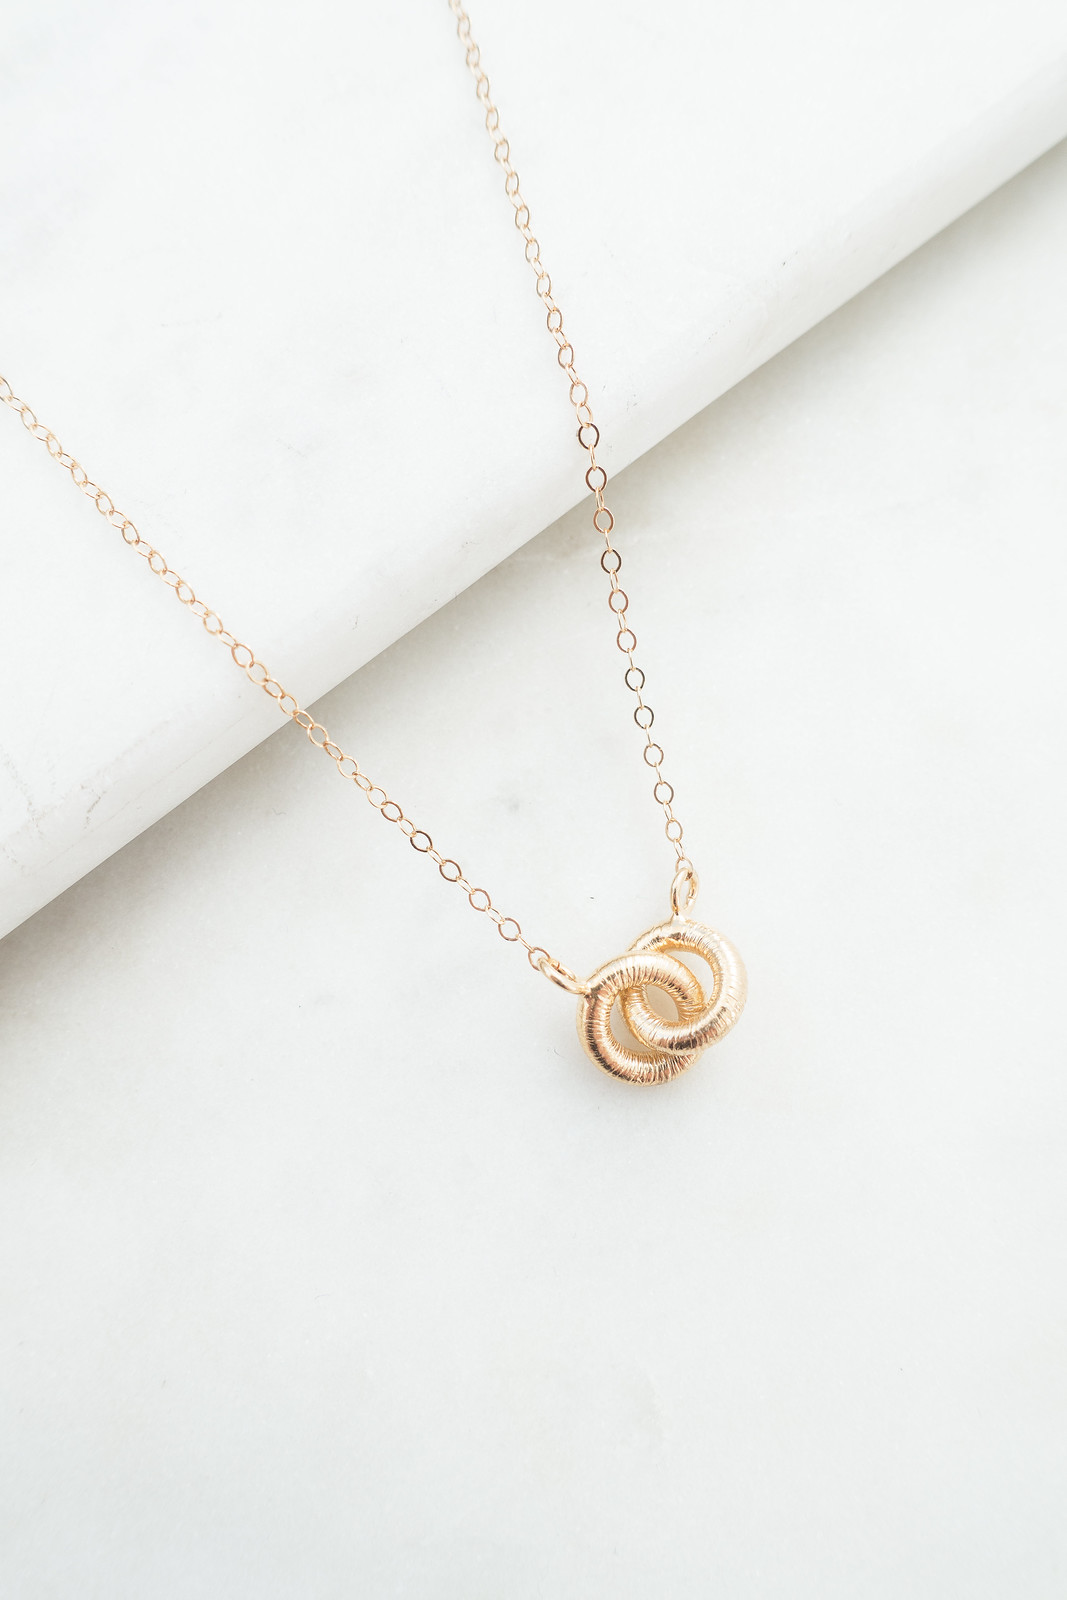 Introducing: The Linked Necklace